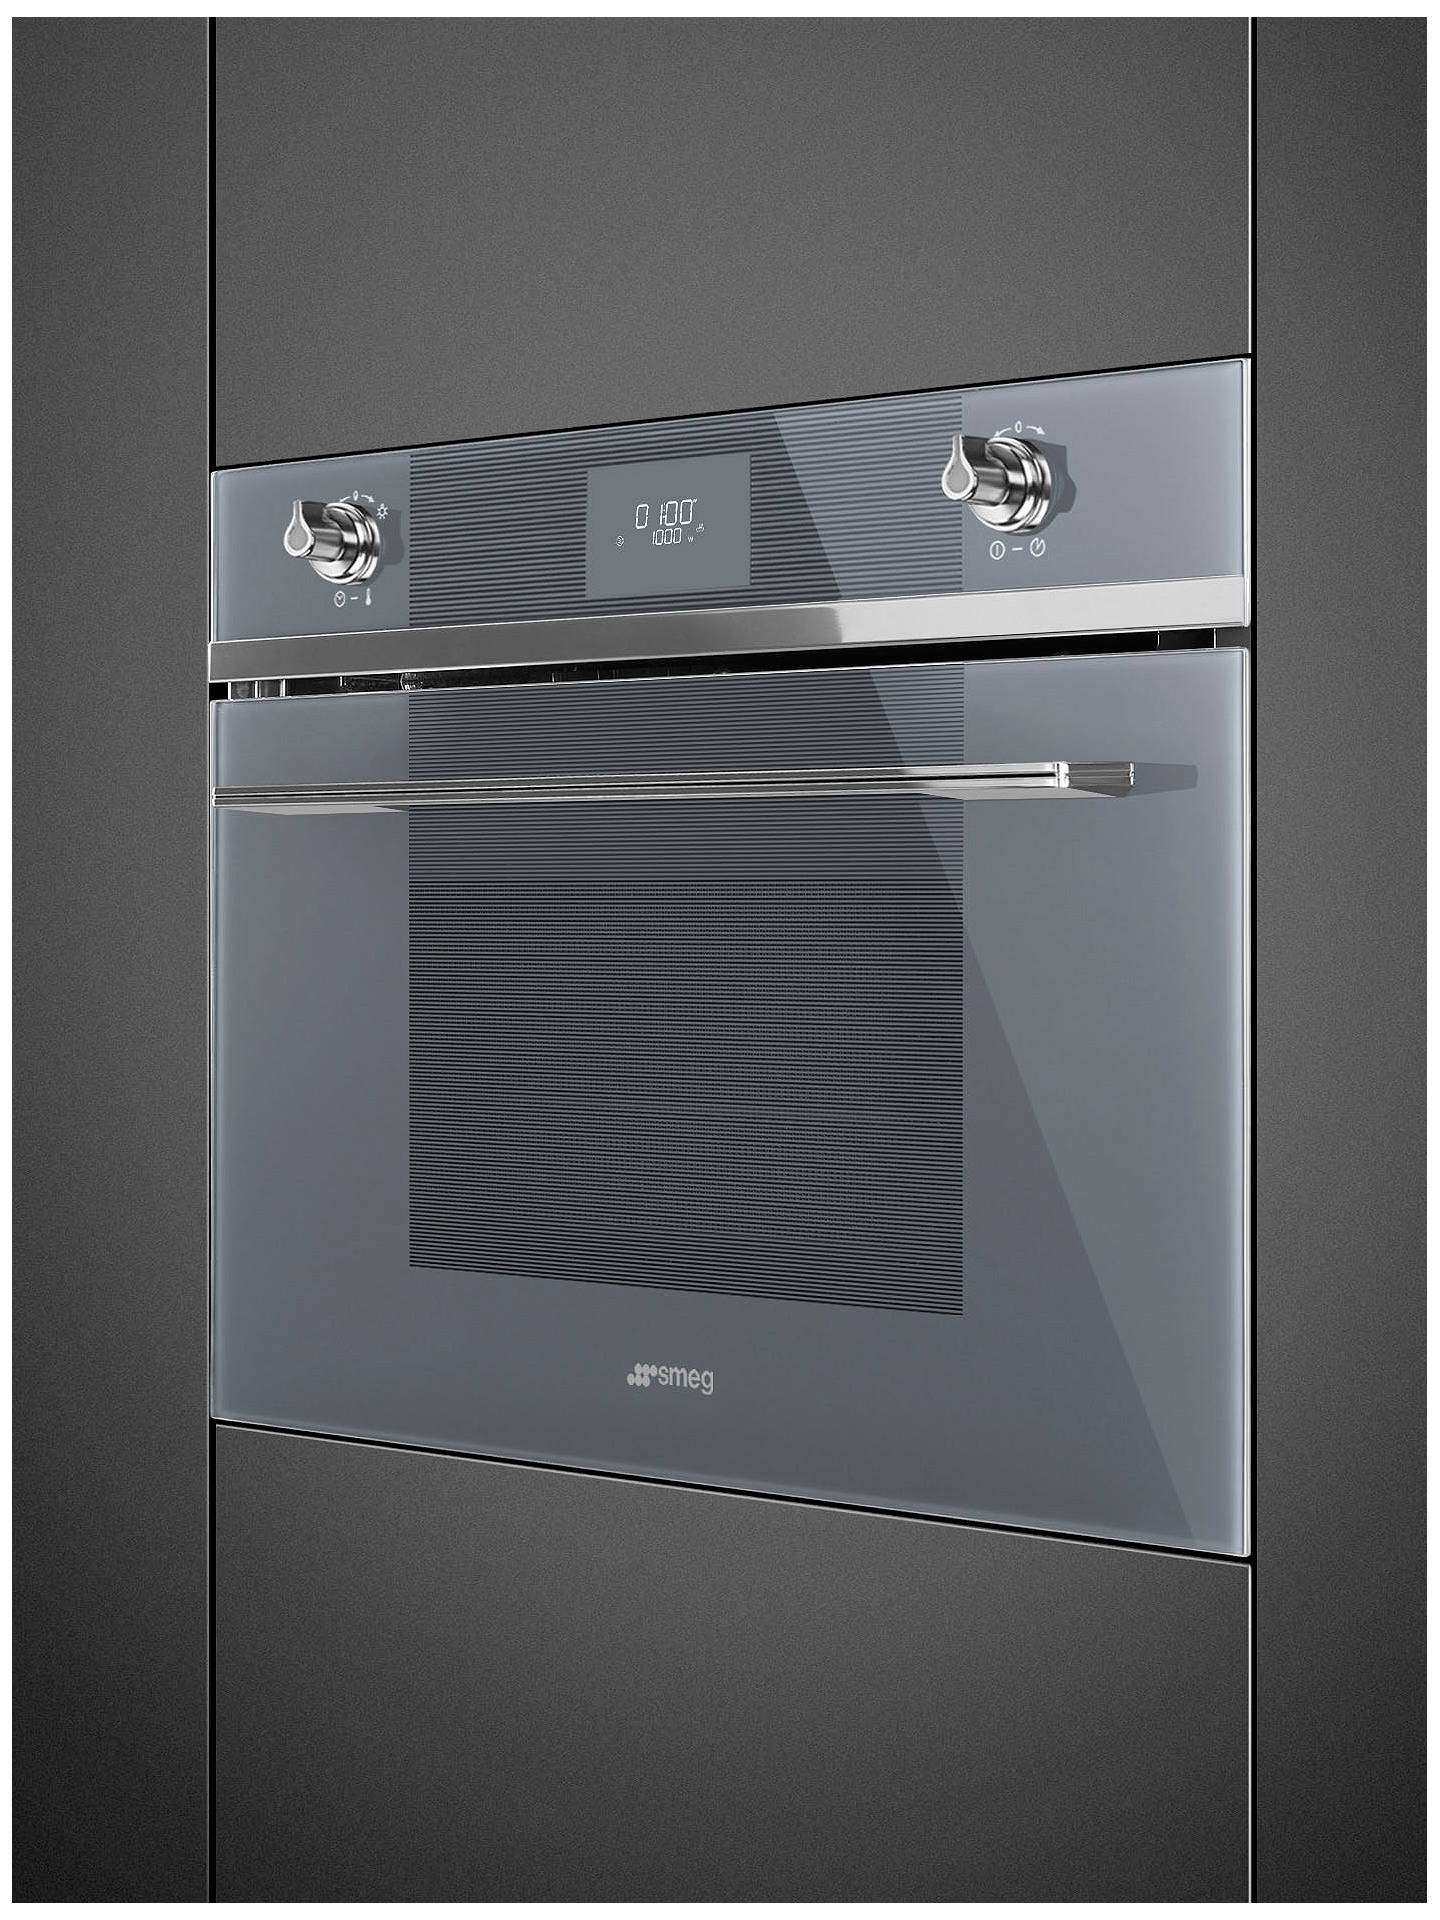 BuySmeg SF4101MS Built-in Combination Microwave and Grill, Silver Glass Online at johnlewis.com